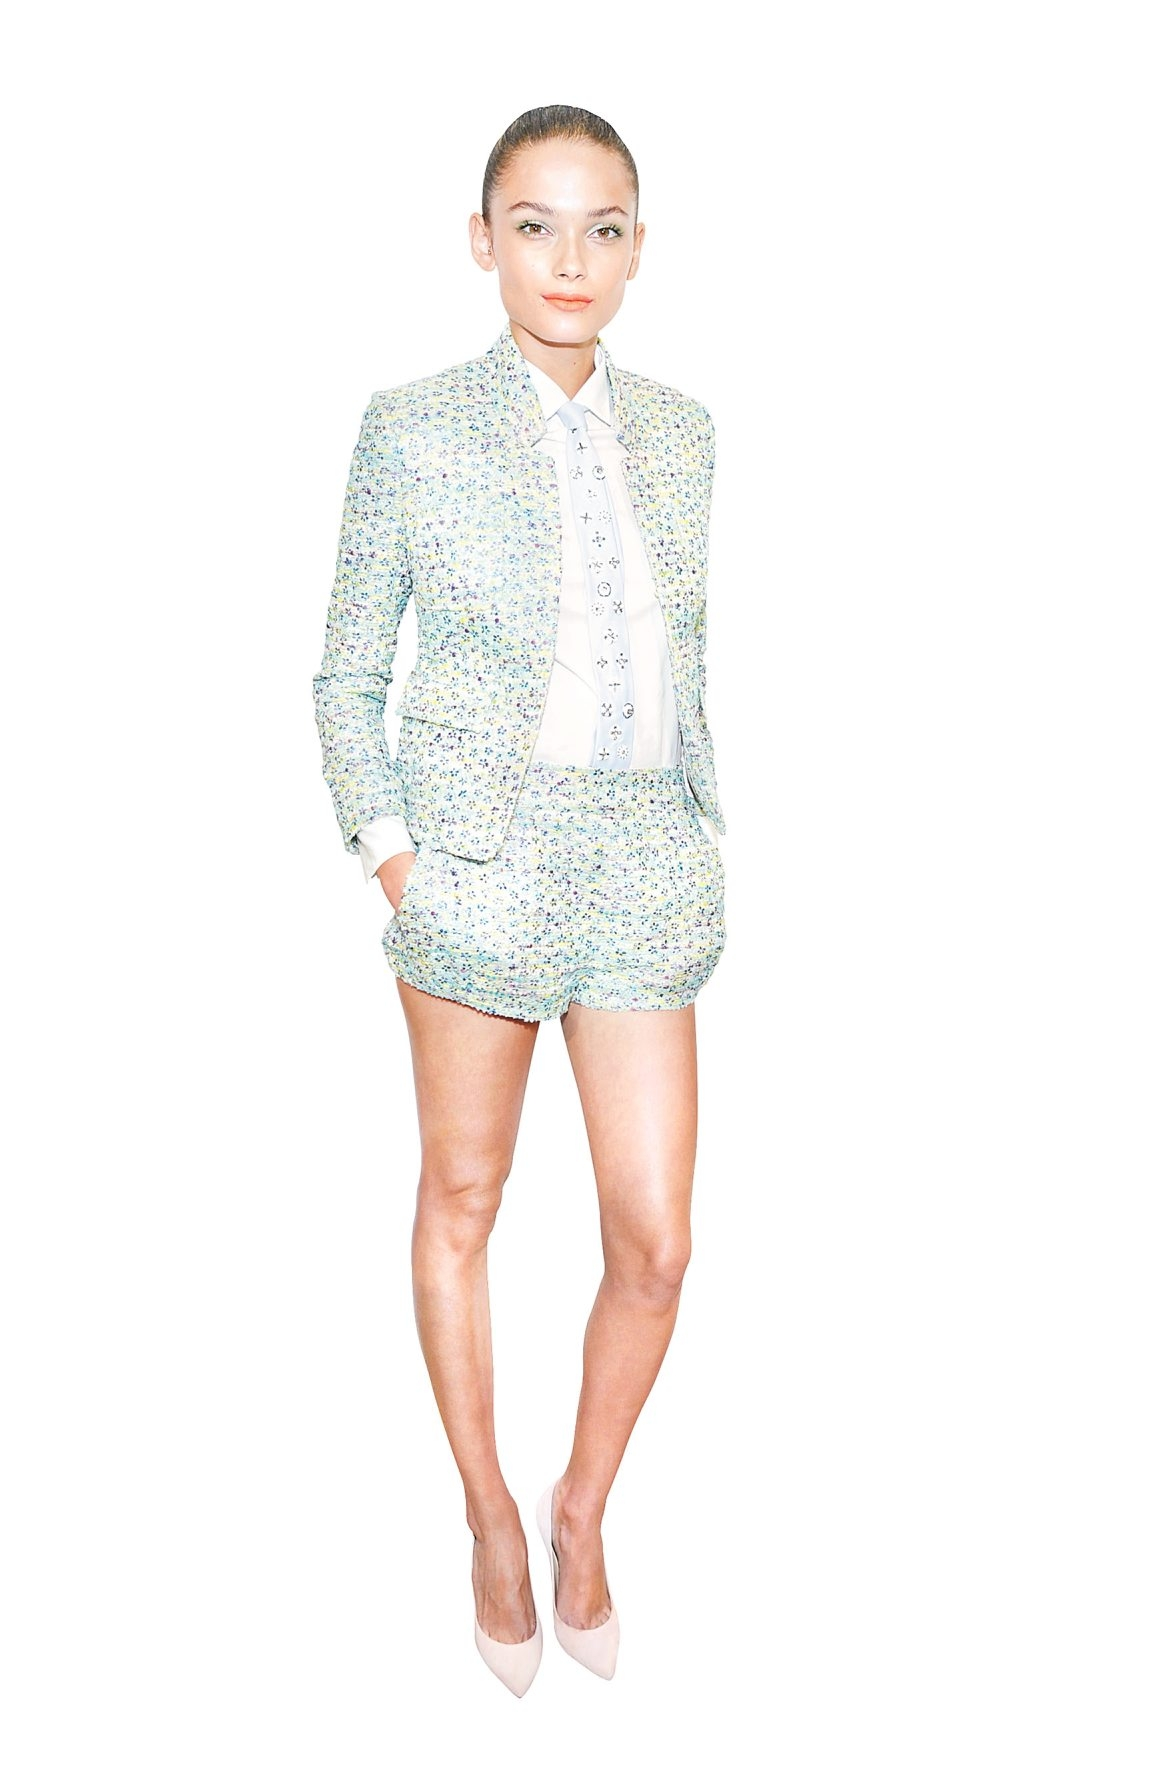 A look from J. Crew's Spring 2013 collection, recently shown in New York. (Getty Images)